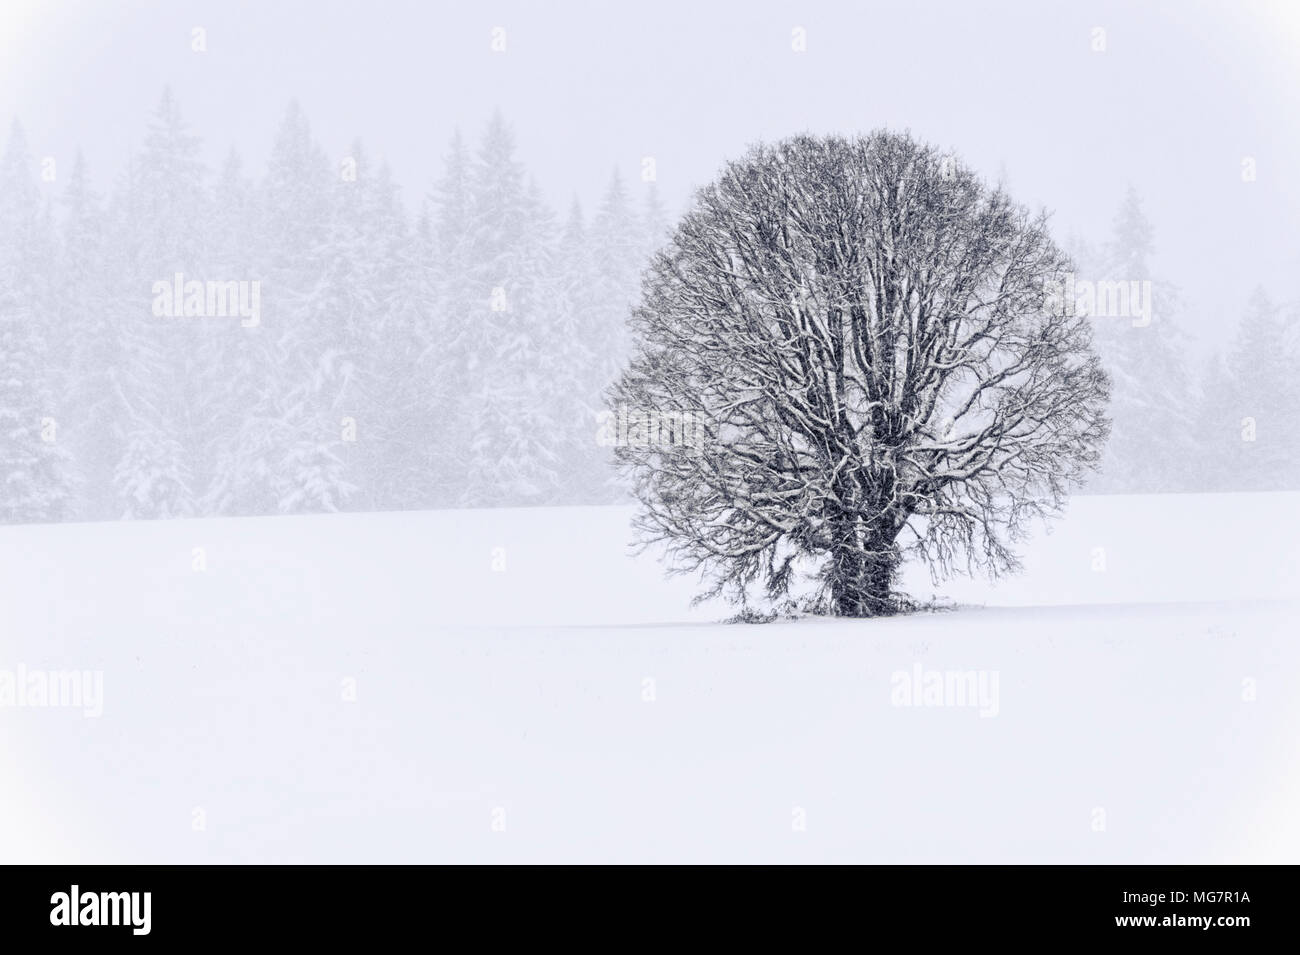 A lone White Oak stand in a field with evergreens in the background while a winter storm whitens the landscape. - Stock Image